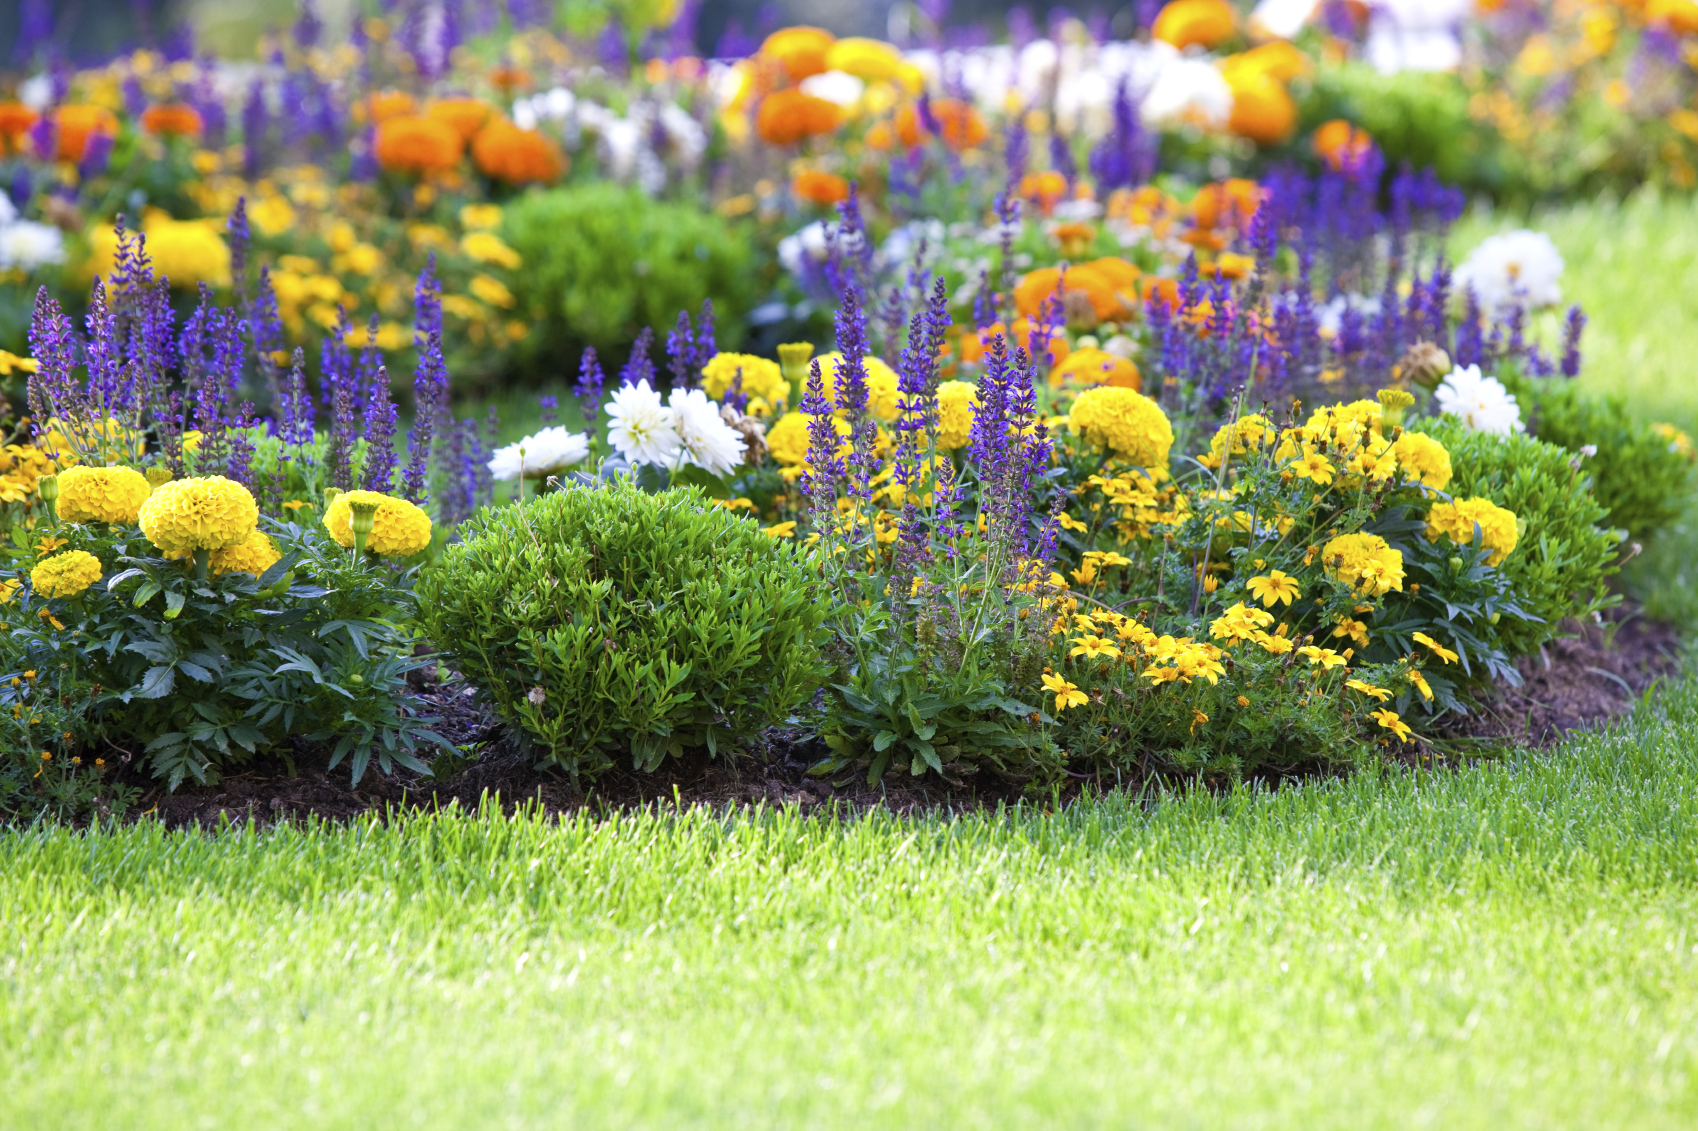 Flower gardening how to start a flower garden for Garden flower bed design ideas